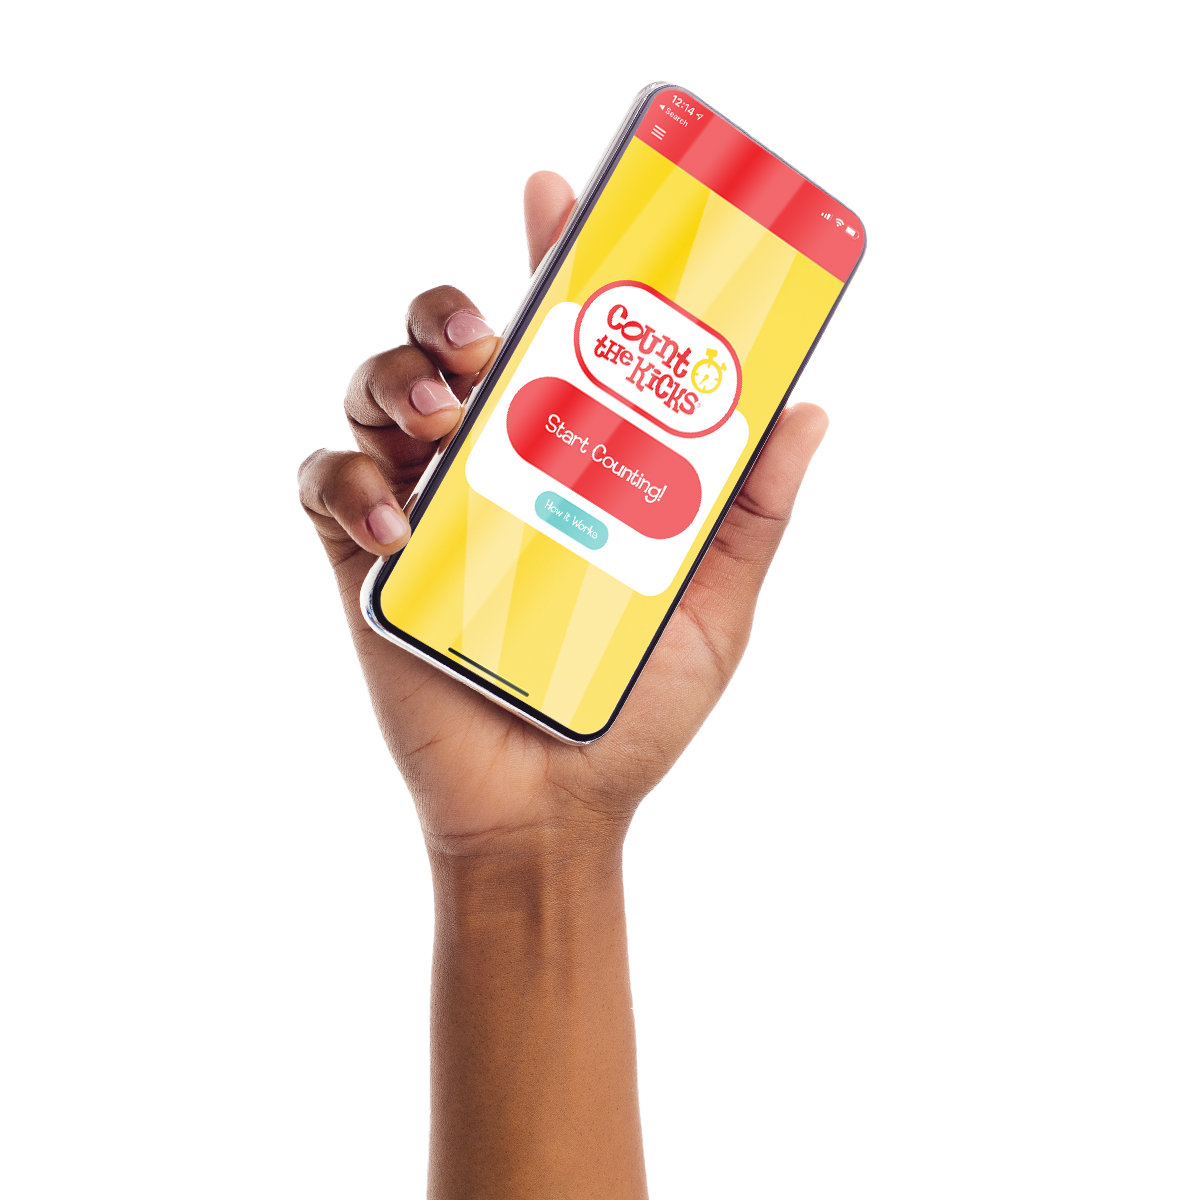 A woman's hand holds a smartphone with the Count the Kicks app on screen.